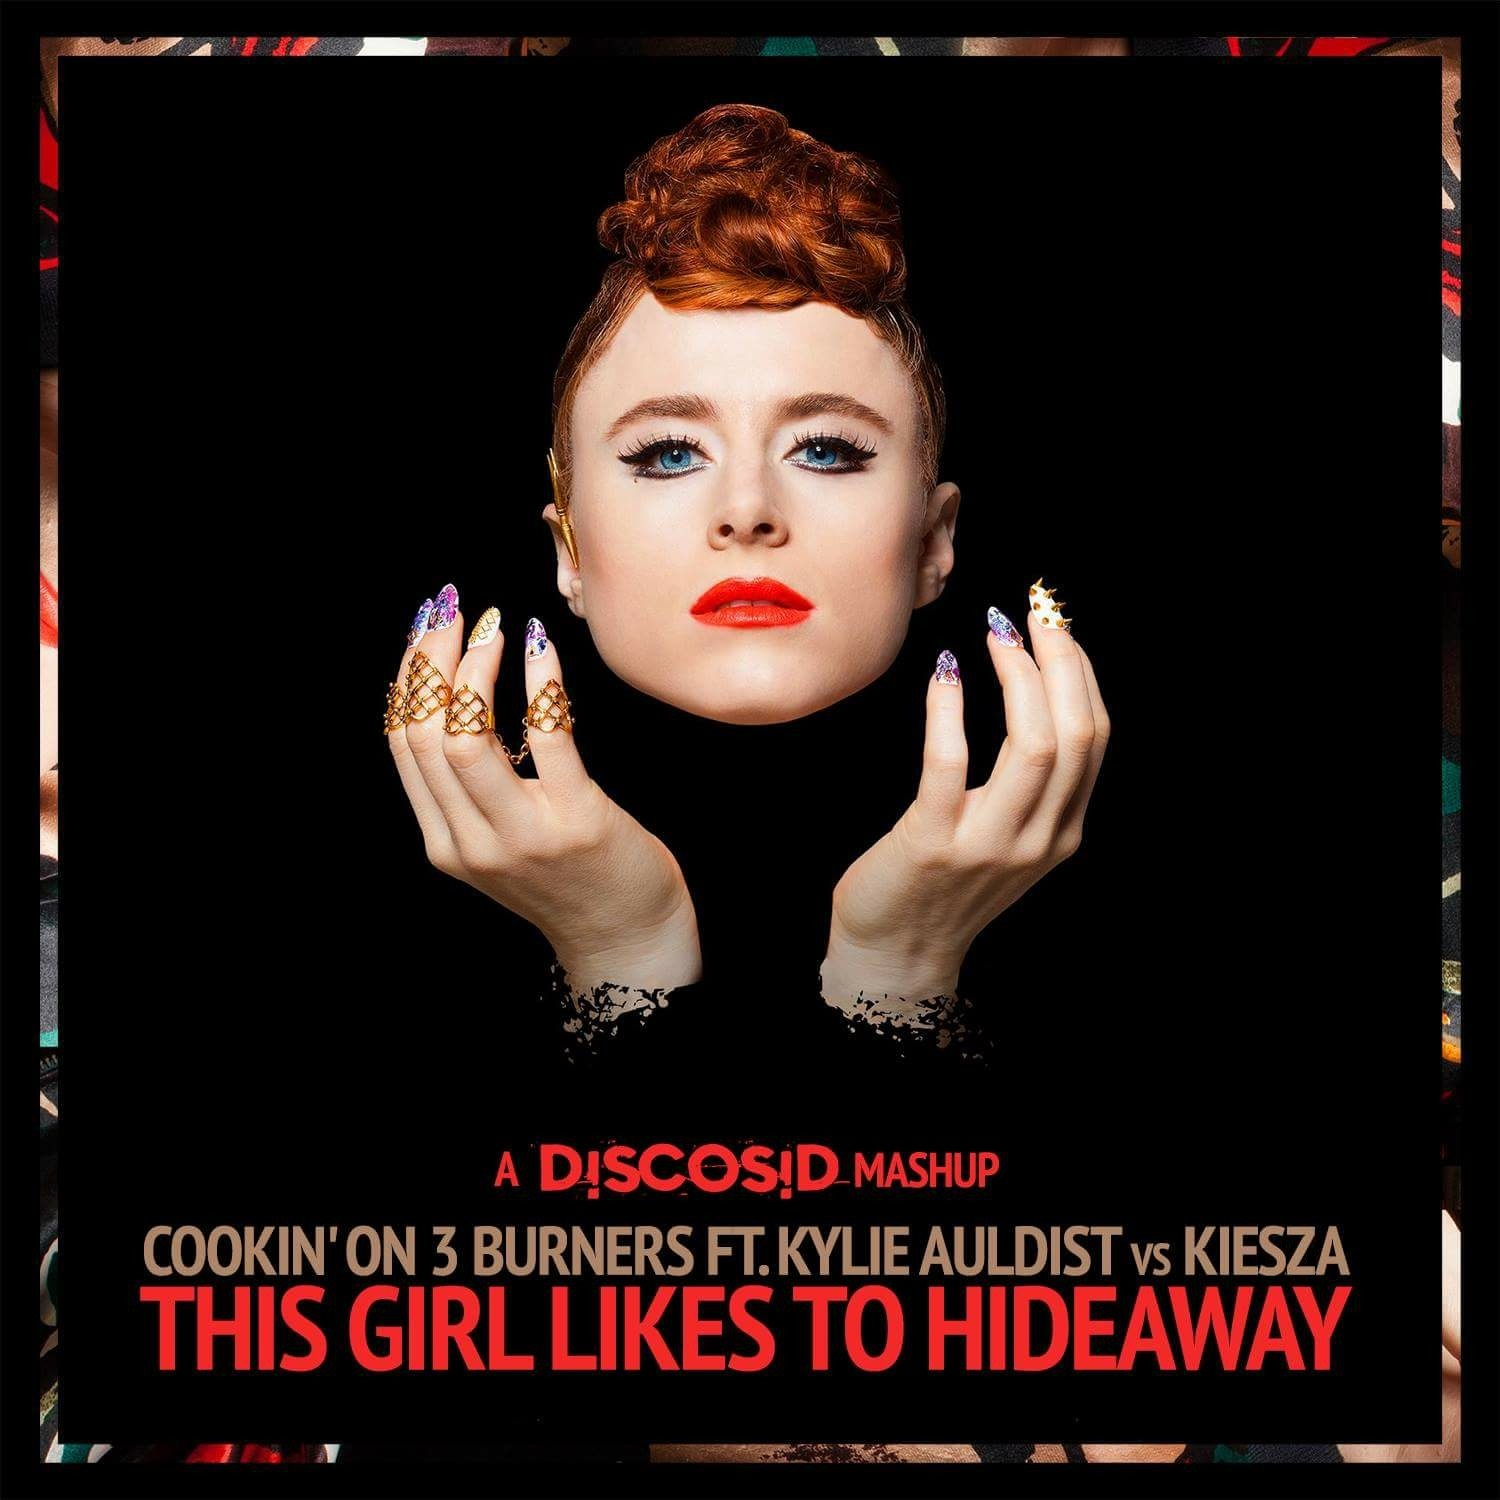 Cookin' on 3 Burners Feat Kylie Auldist Vs Kiesza - This Girl Likes To Hideaway (Discosid Mashup)